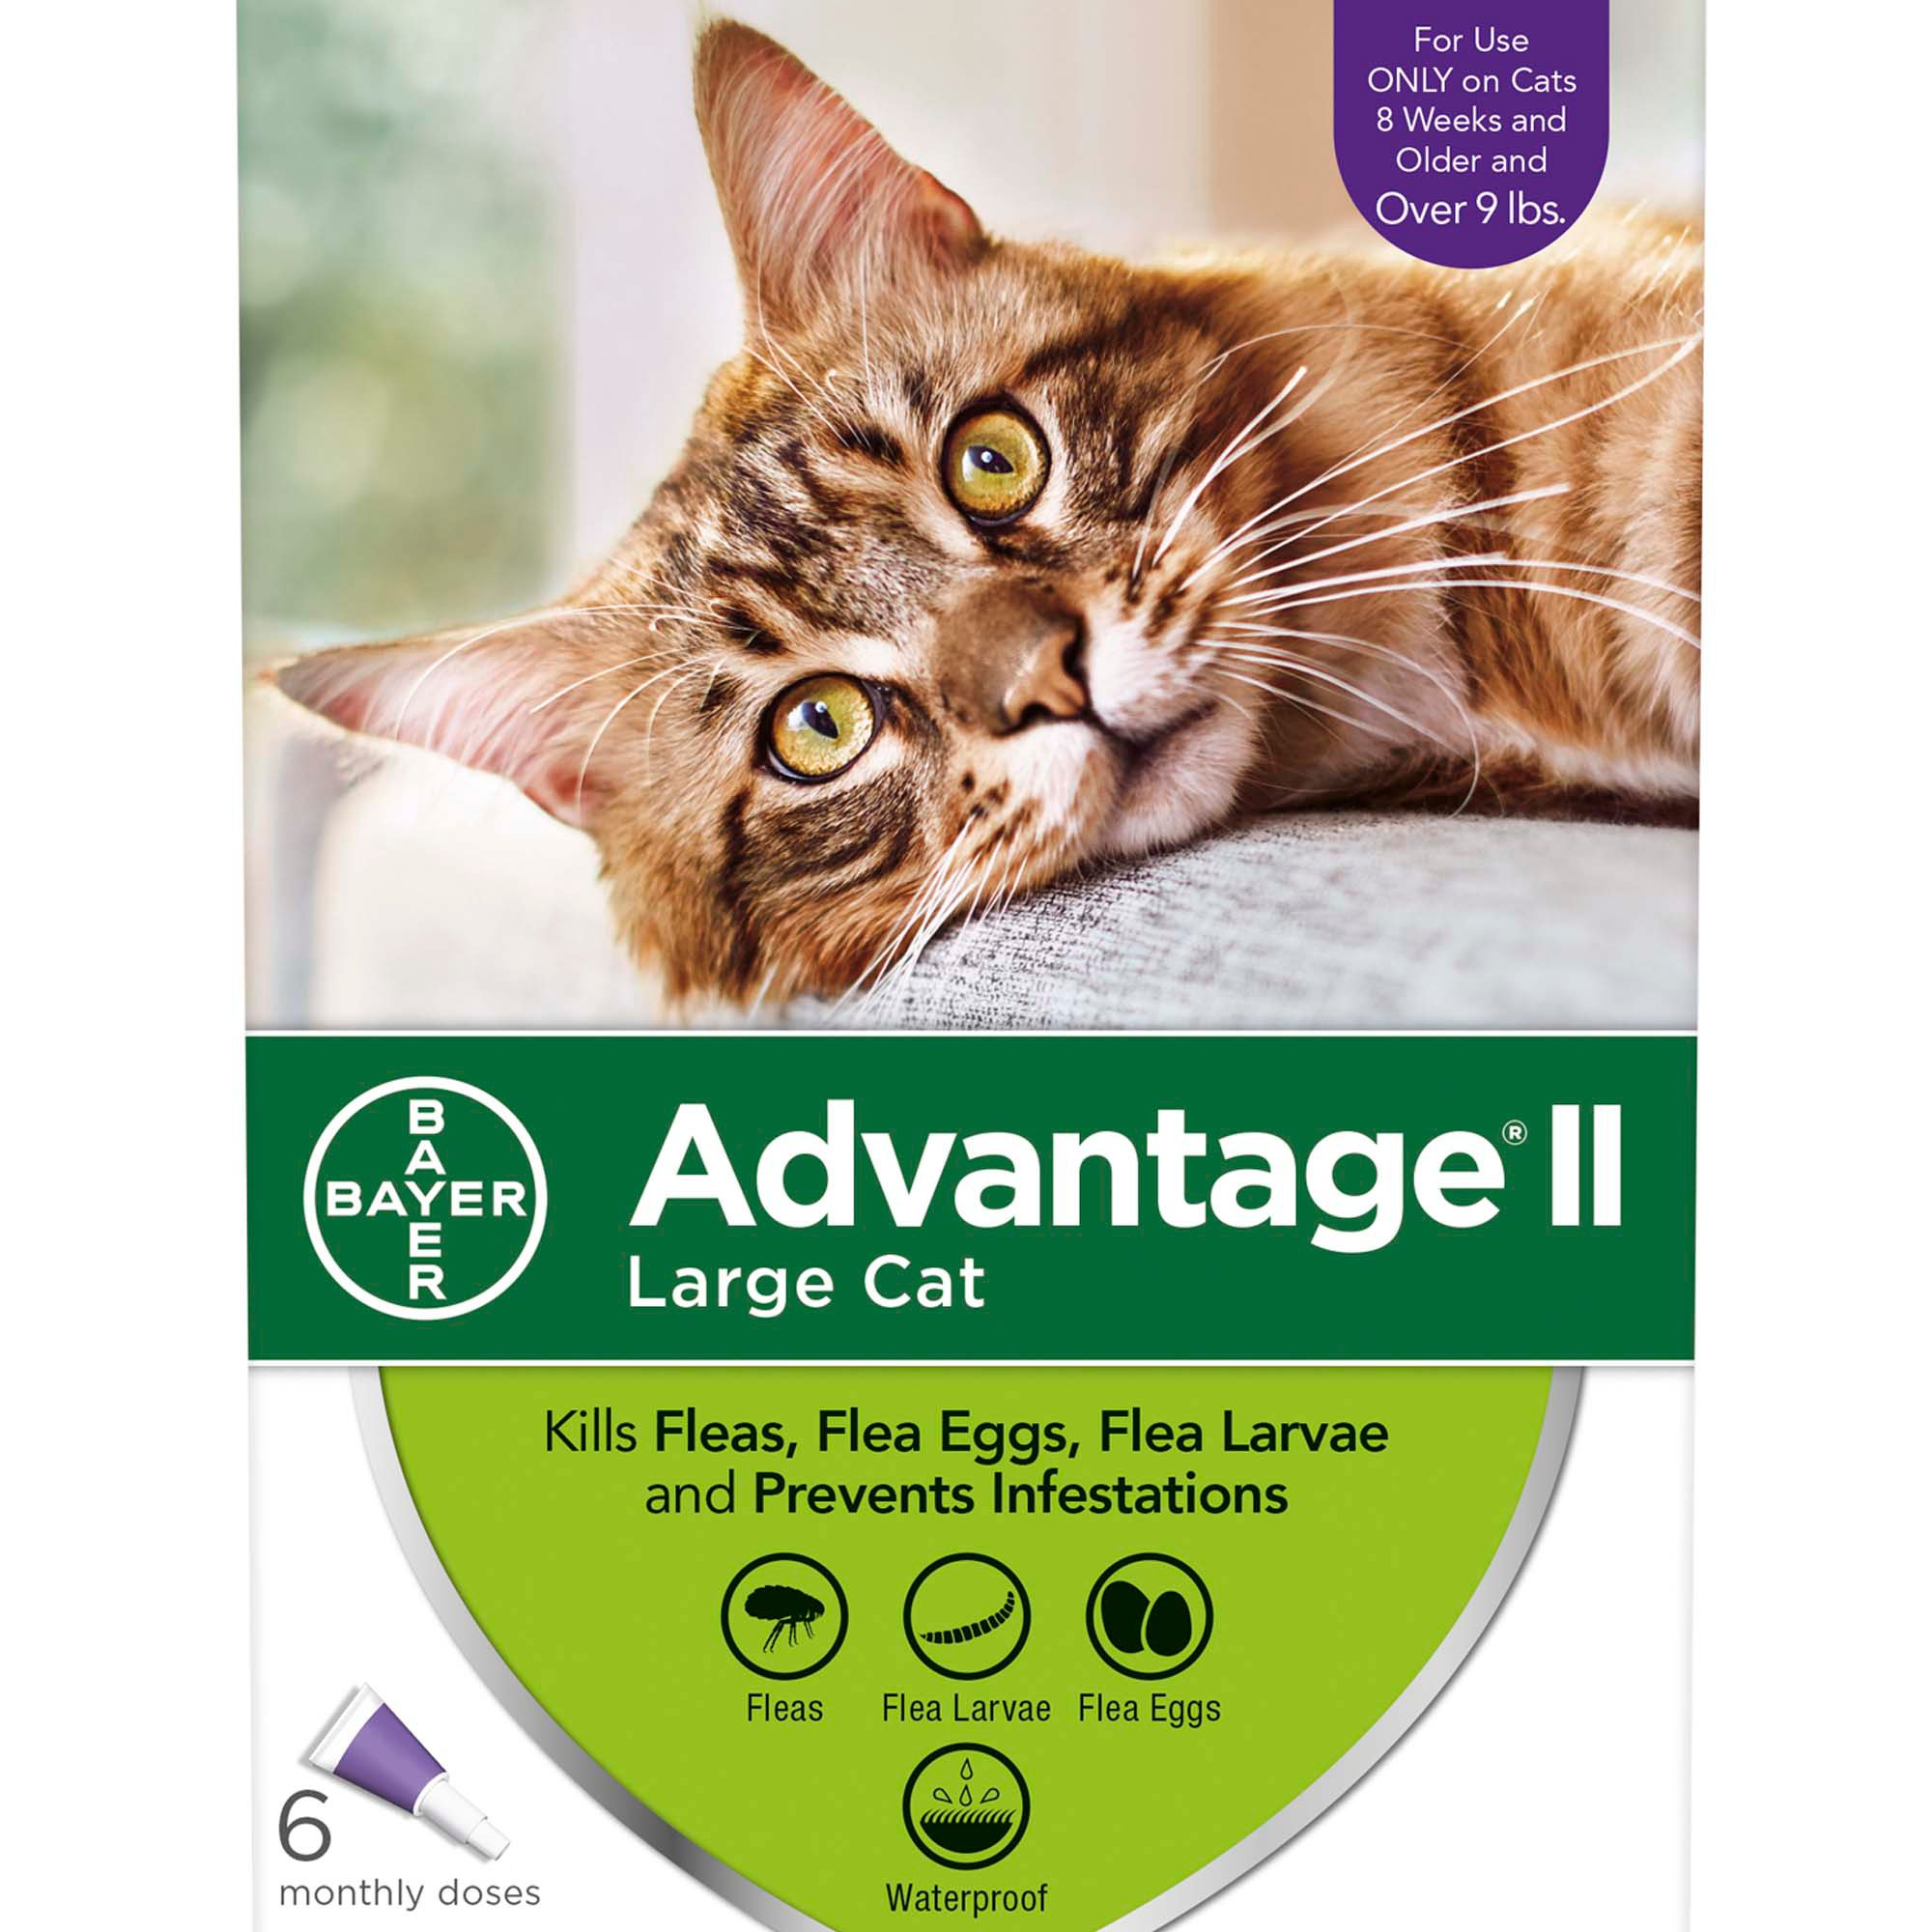 Advantage II Once-A-Month Cat & Kitten Topical Flea Treatment Over 9 lbs.